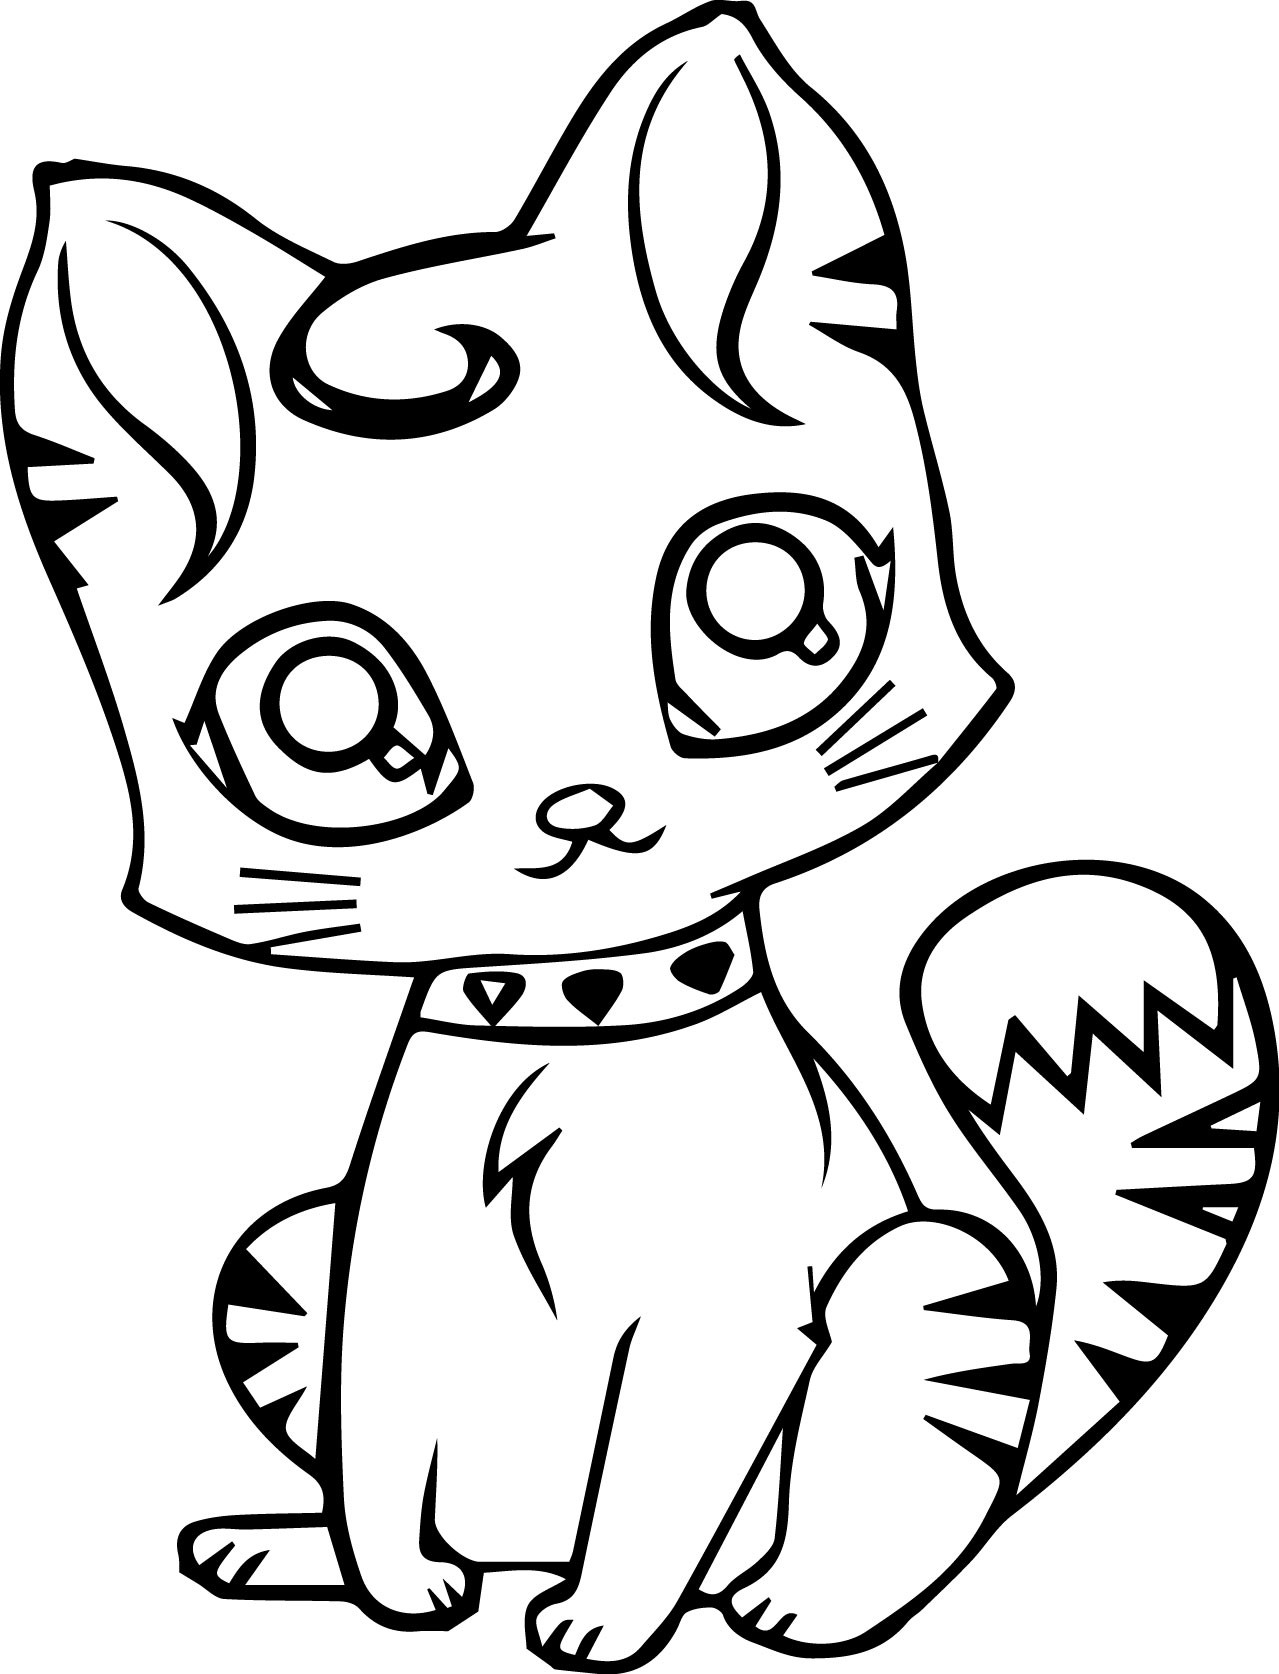 pictures of cats and kittens to color free cat coloring pages color pictures to of and cats kittens